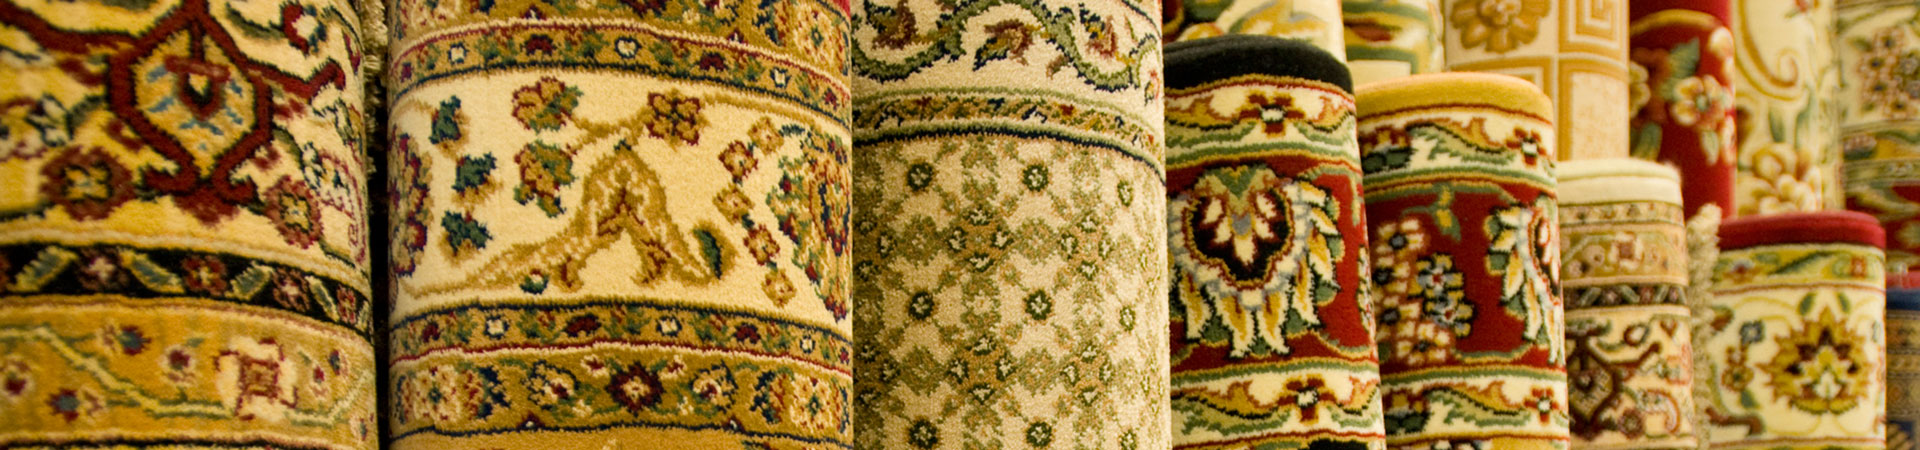 Mackay Carpet Care & Restoration Services